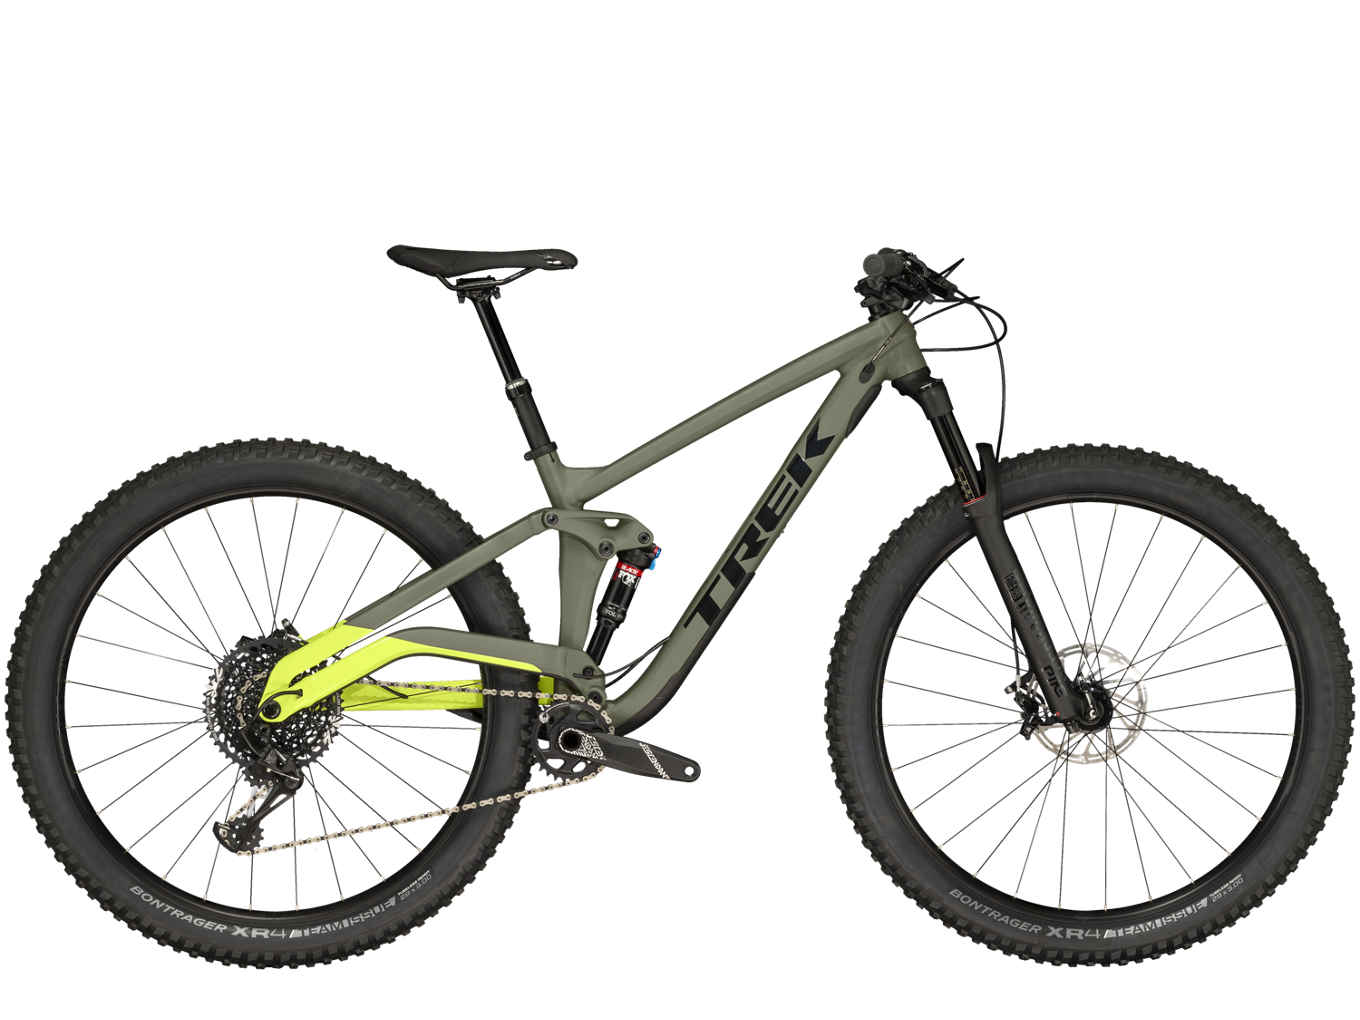 Trail Mountain Bikes >> Mountain Bikes All Pro Bike Shop